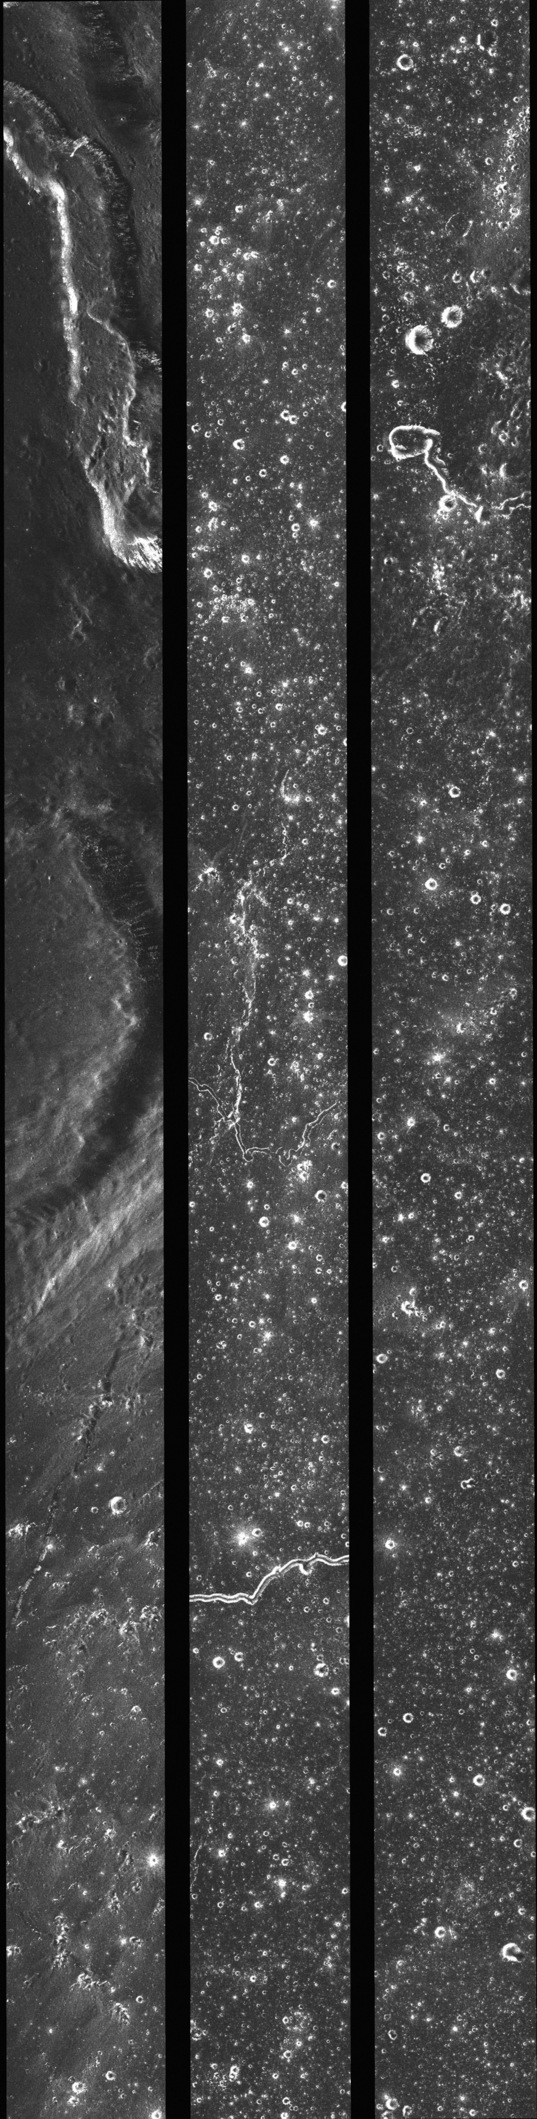 Mini-RF image strip across Oceanus Procellarum